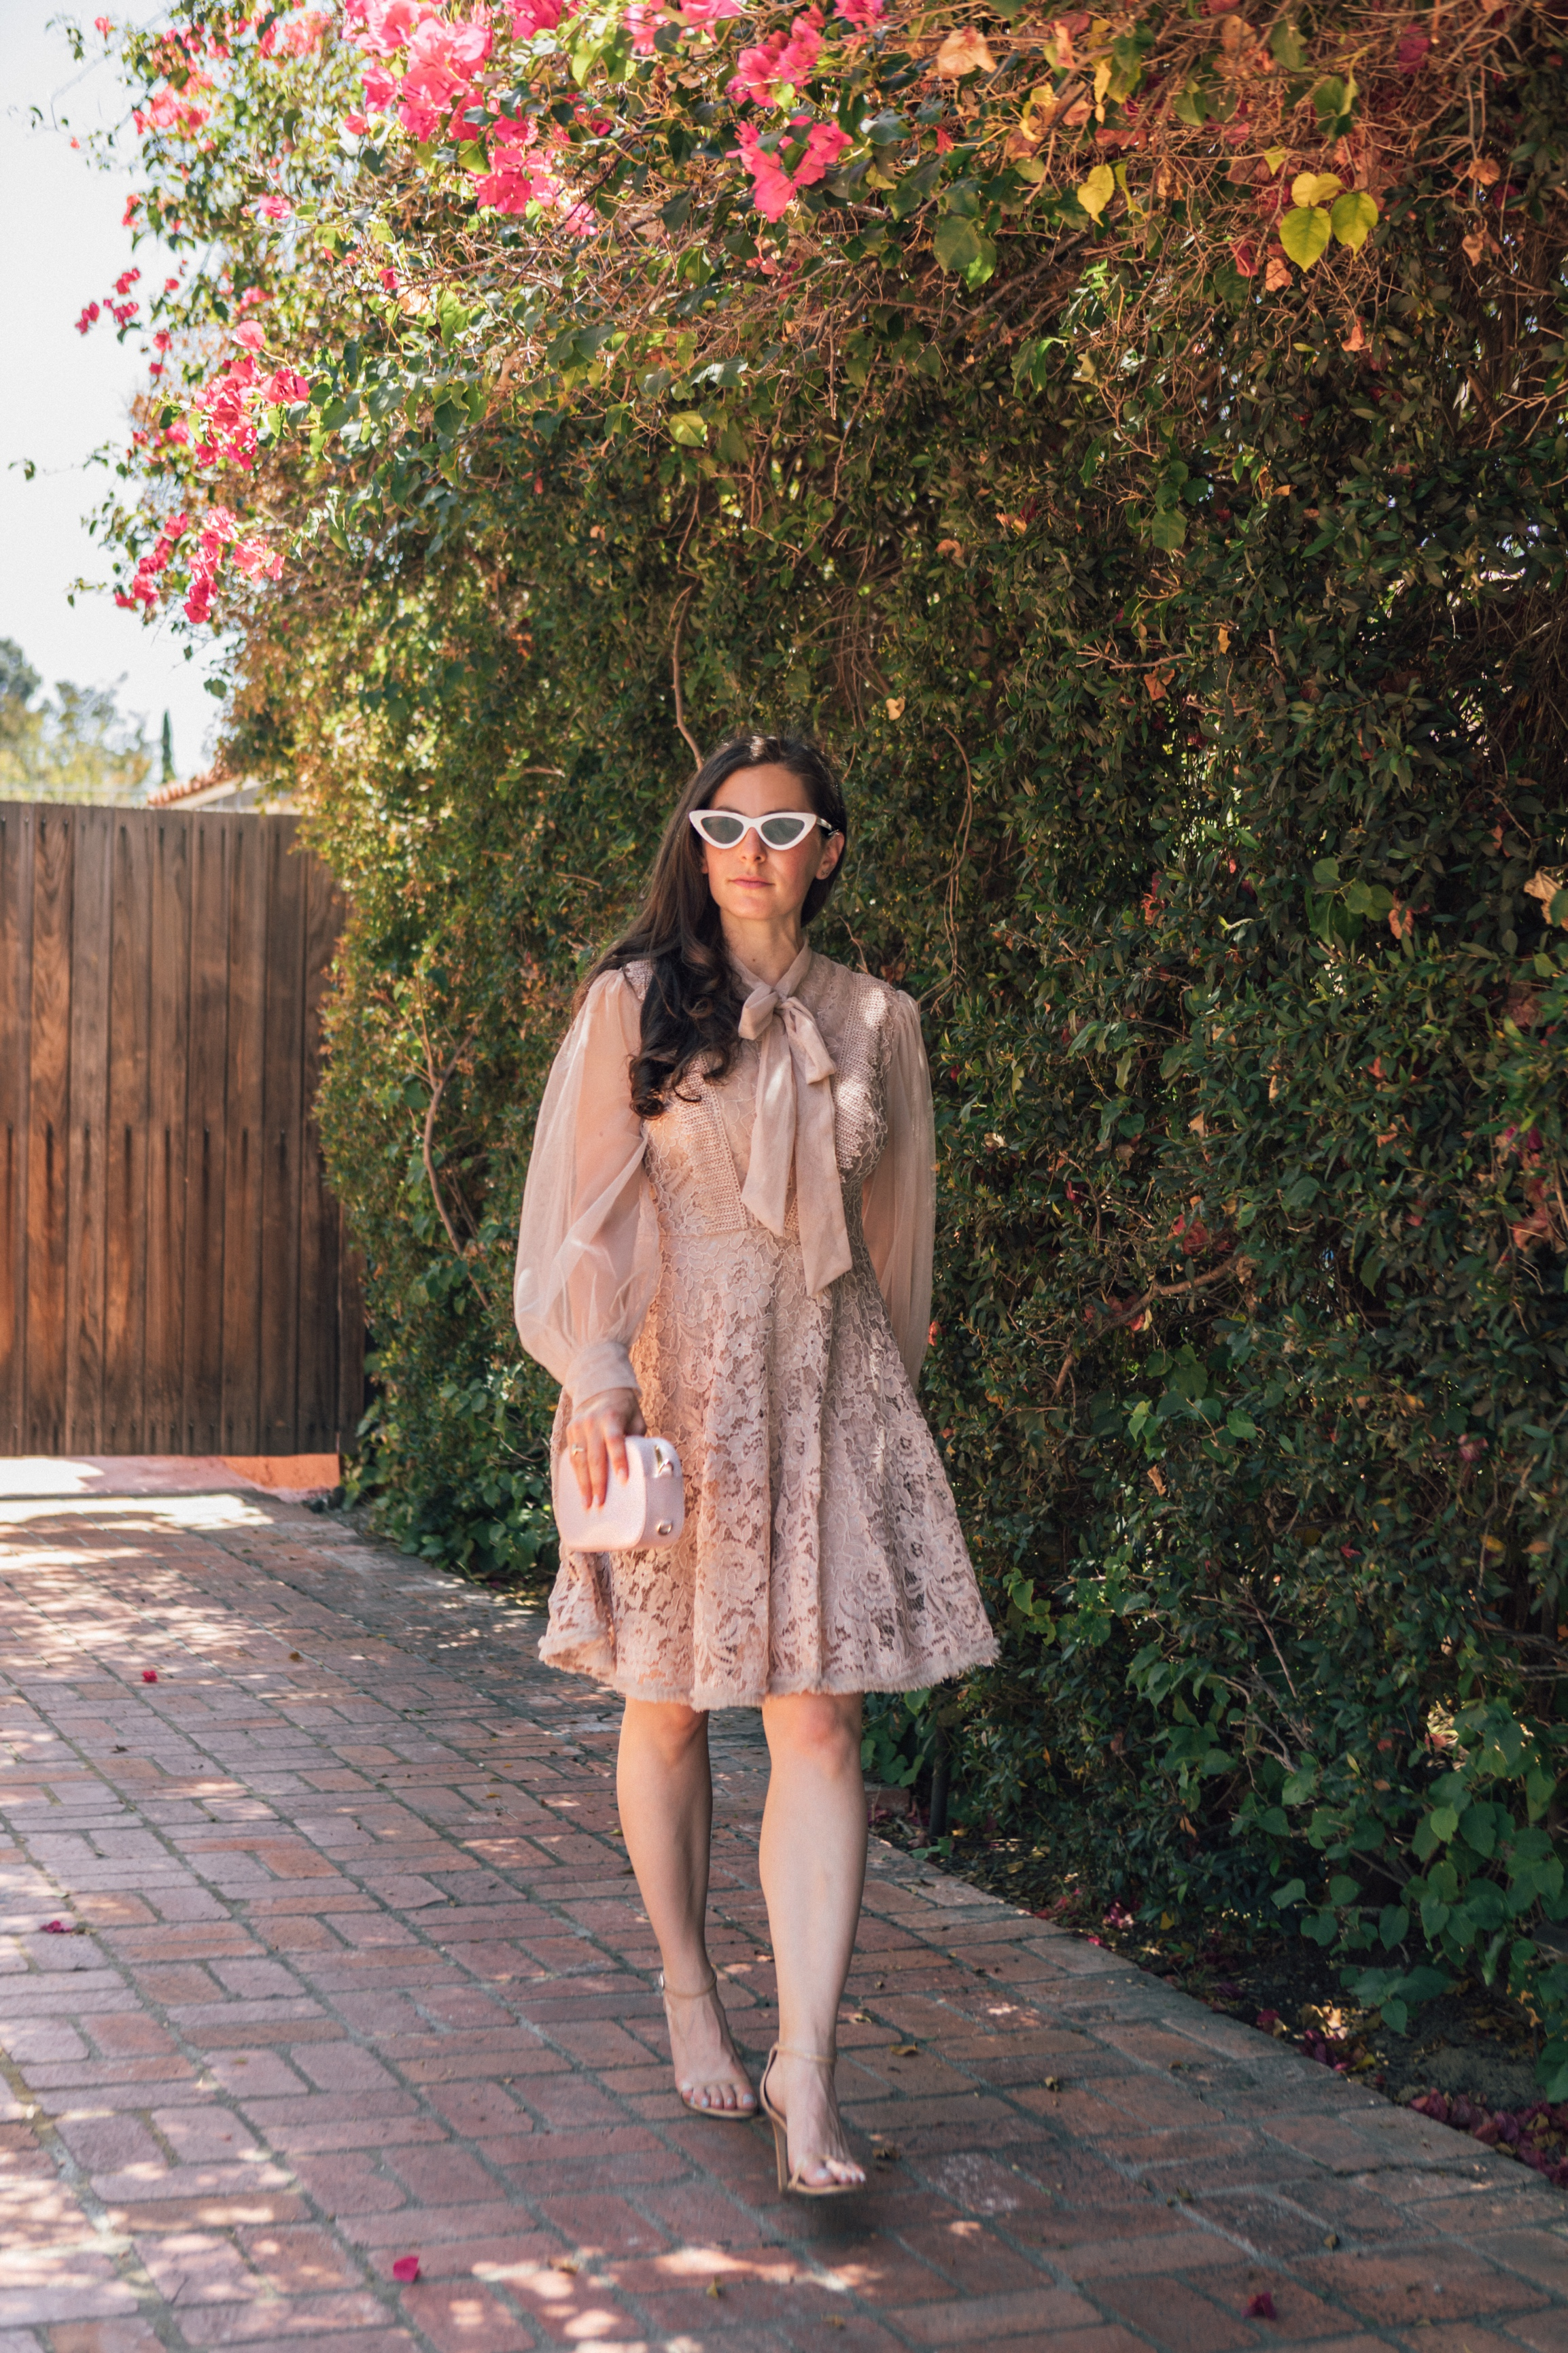 LA Blogger, RELish By Arielle wears a Chicwish lace and mesh dress with a bow